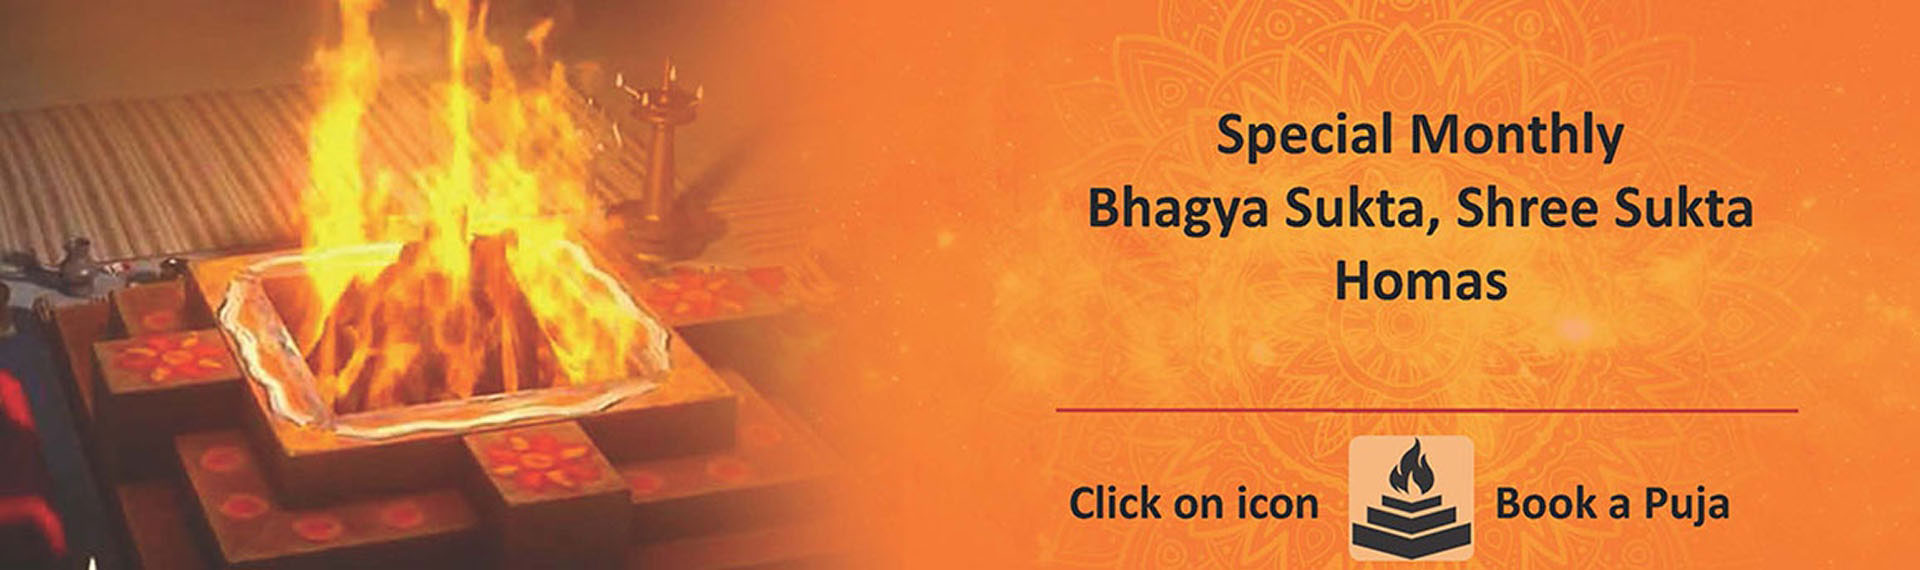 Special Monthly Homa for Health